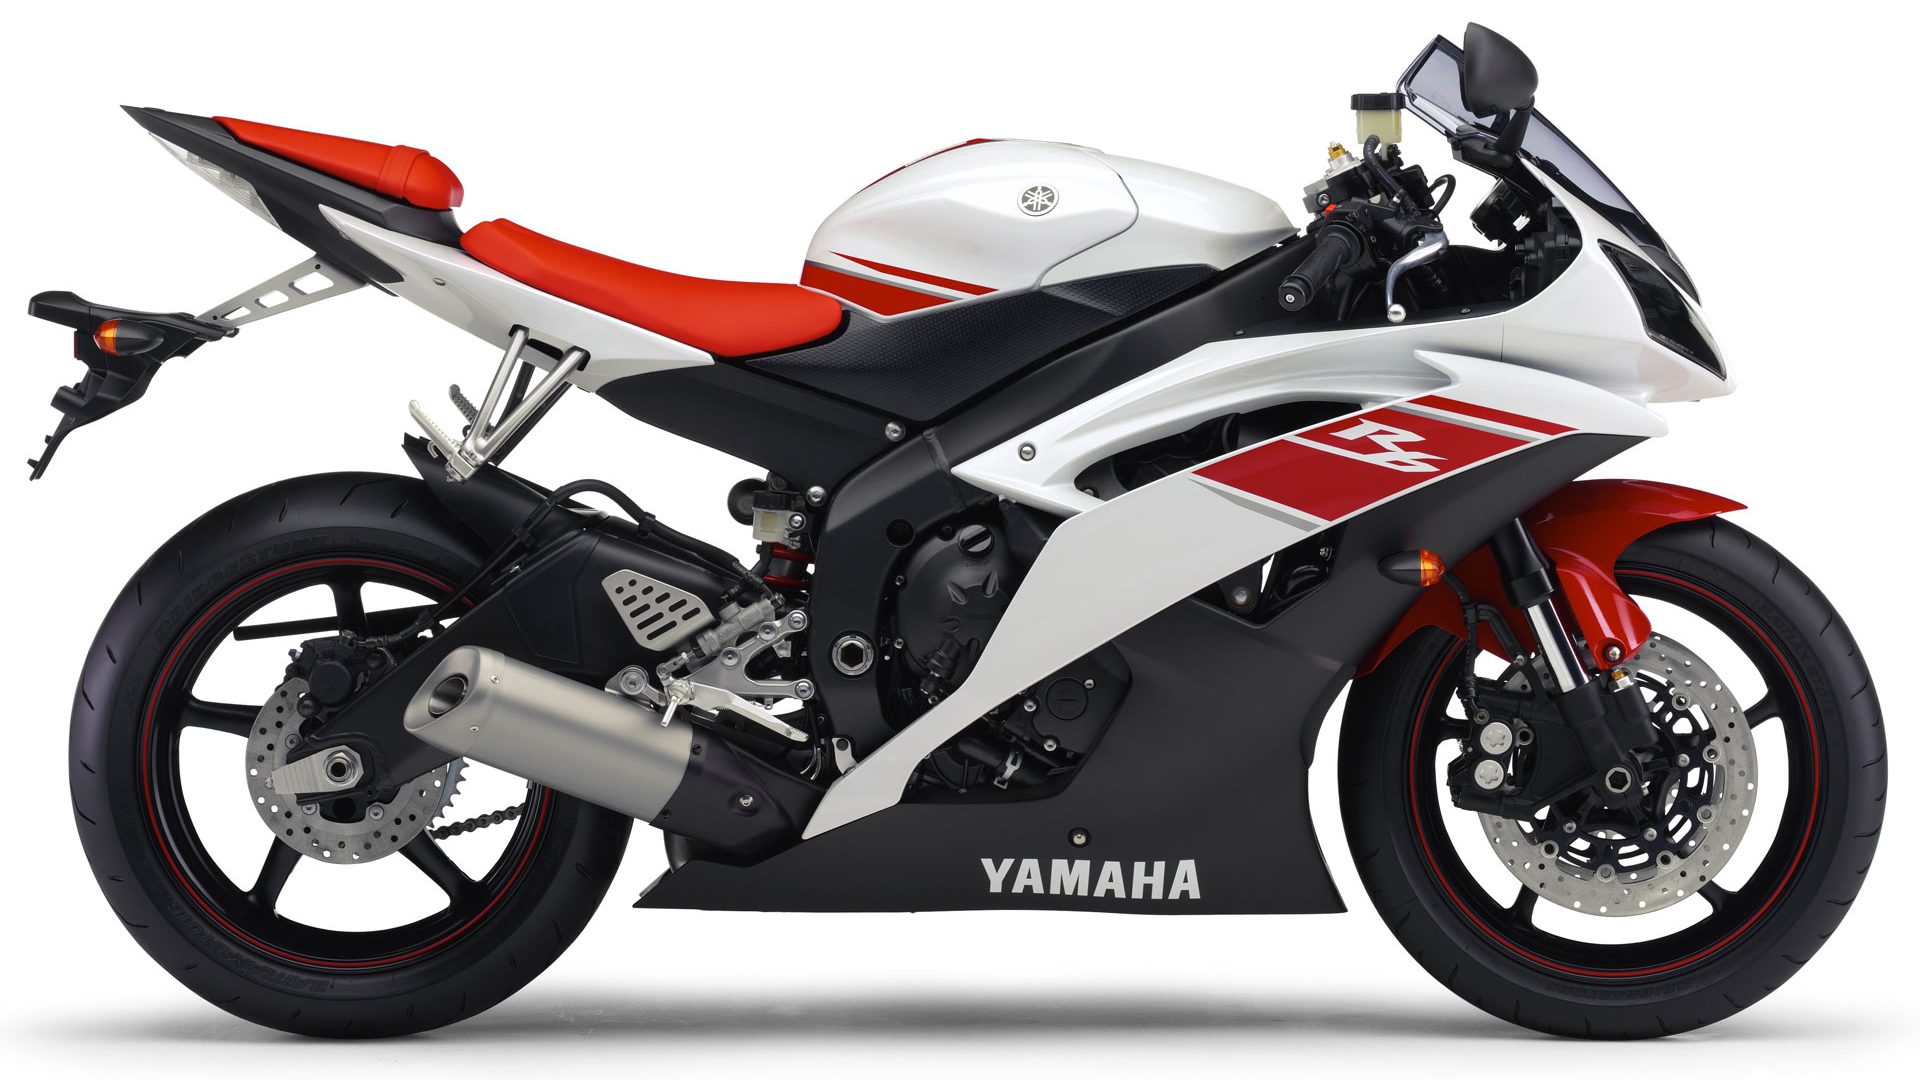 Yamaha Bike 2015 Wallpapers for desktop